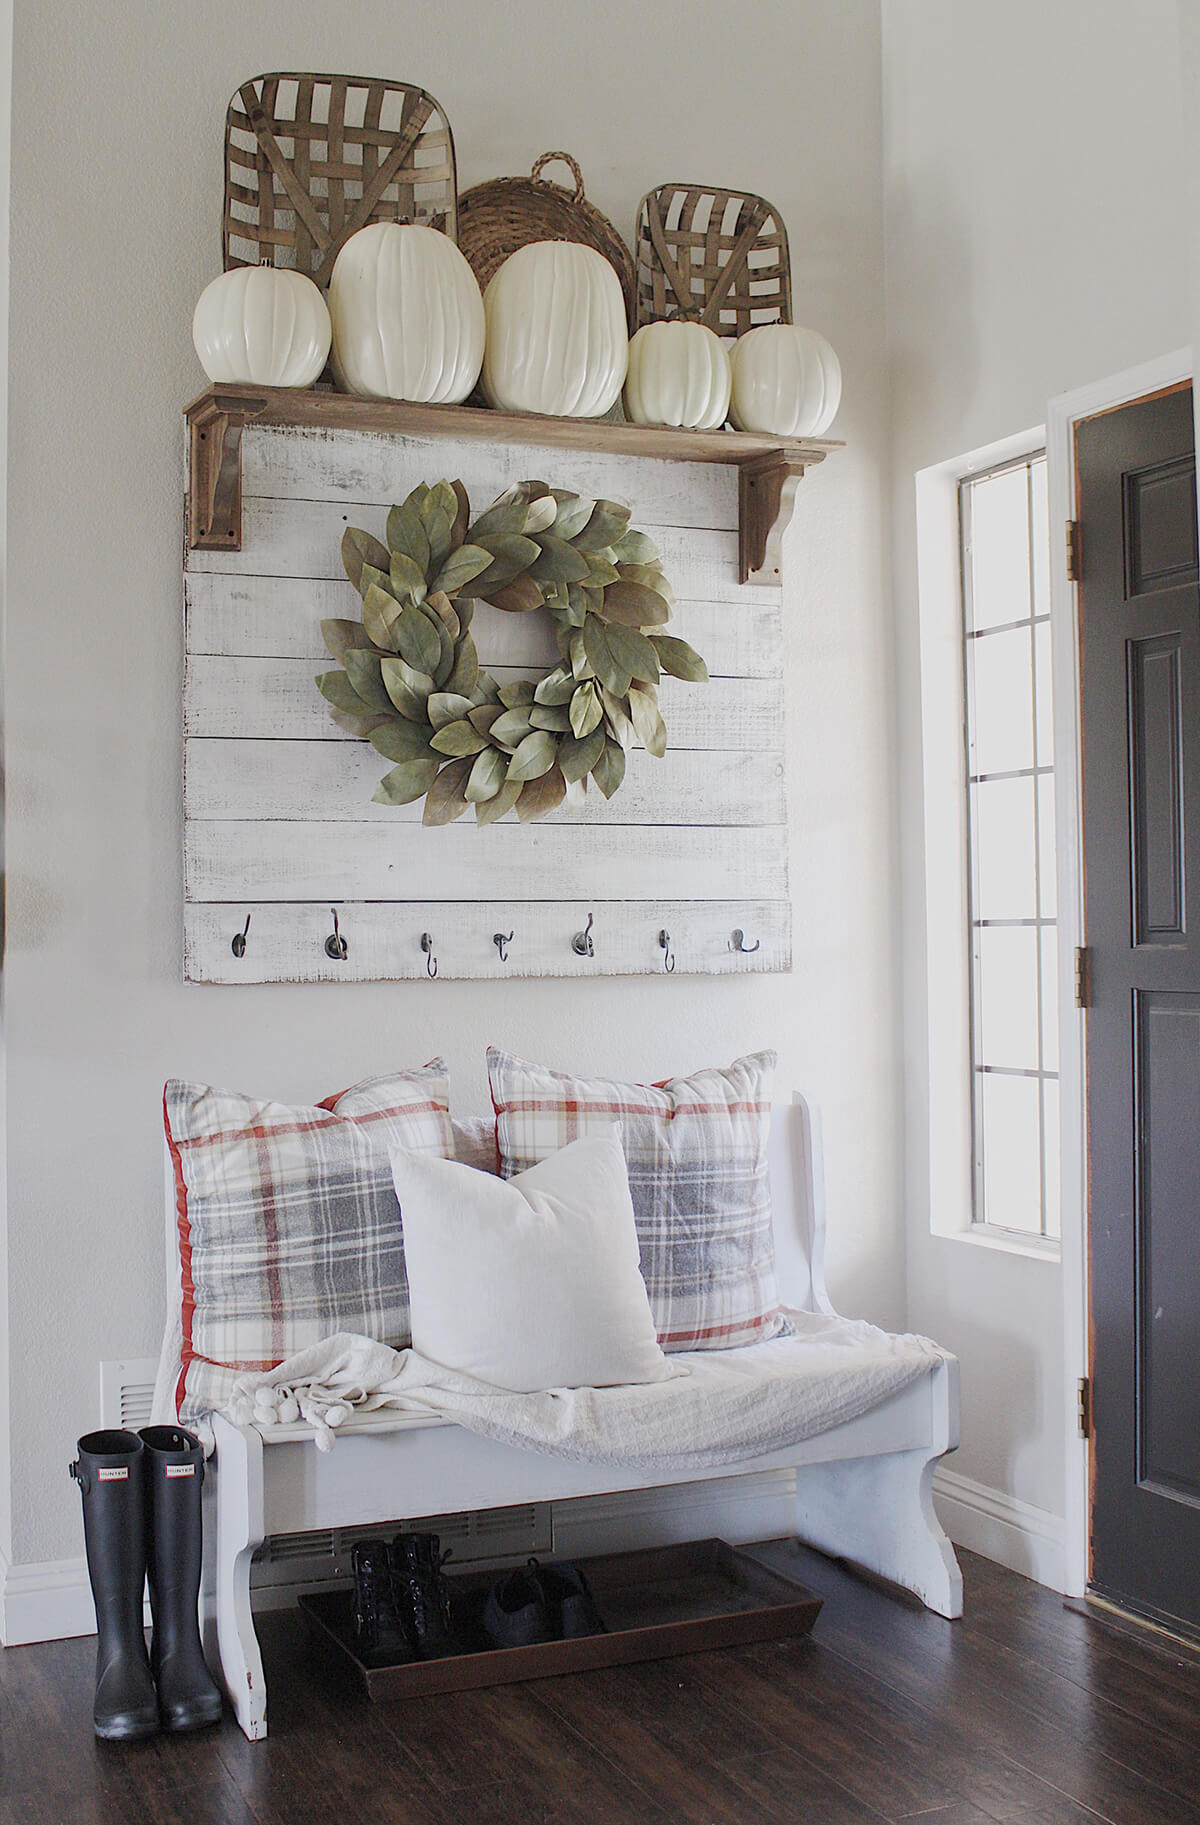 17 mounted wreath and plaid pillows in pastels